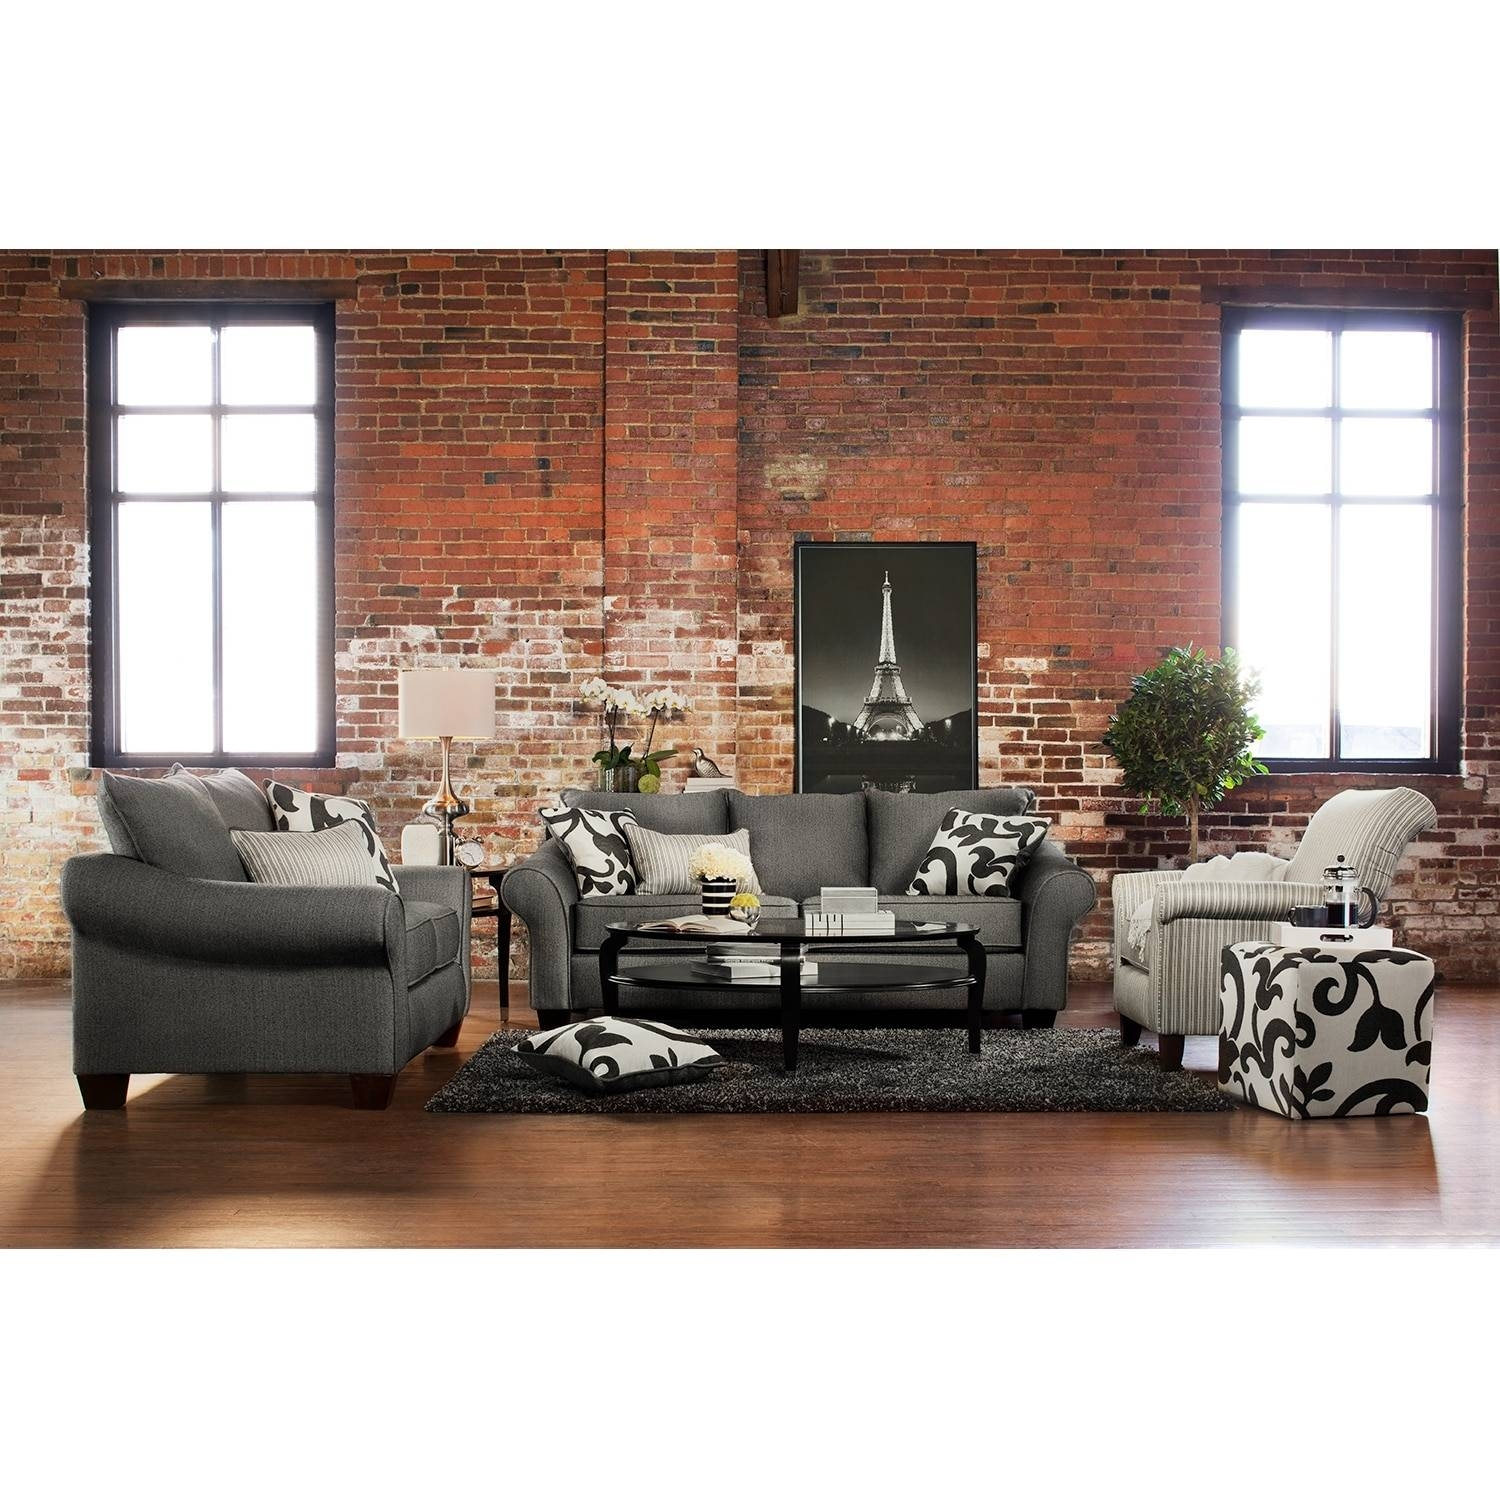 Colette Sofa, Loveseat And Accent Chair Set - Gray | American throughout Sofa Loveseat And Chairs (Image 8 of 30)